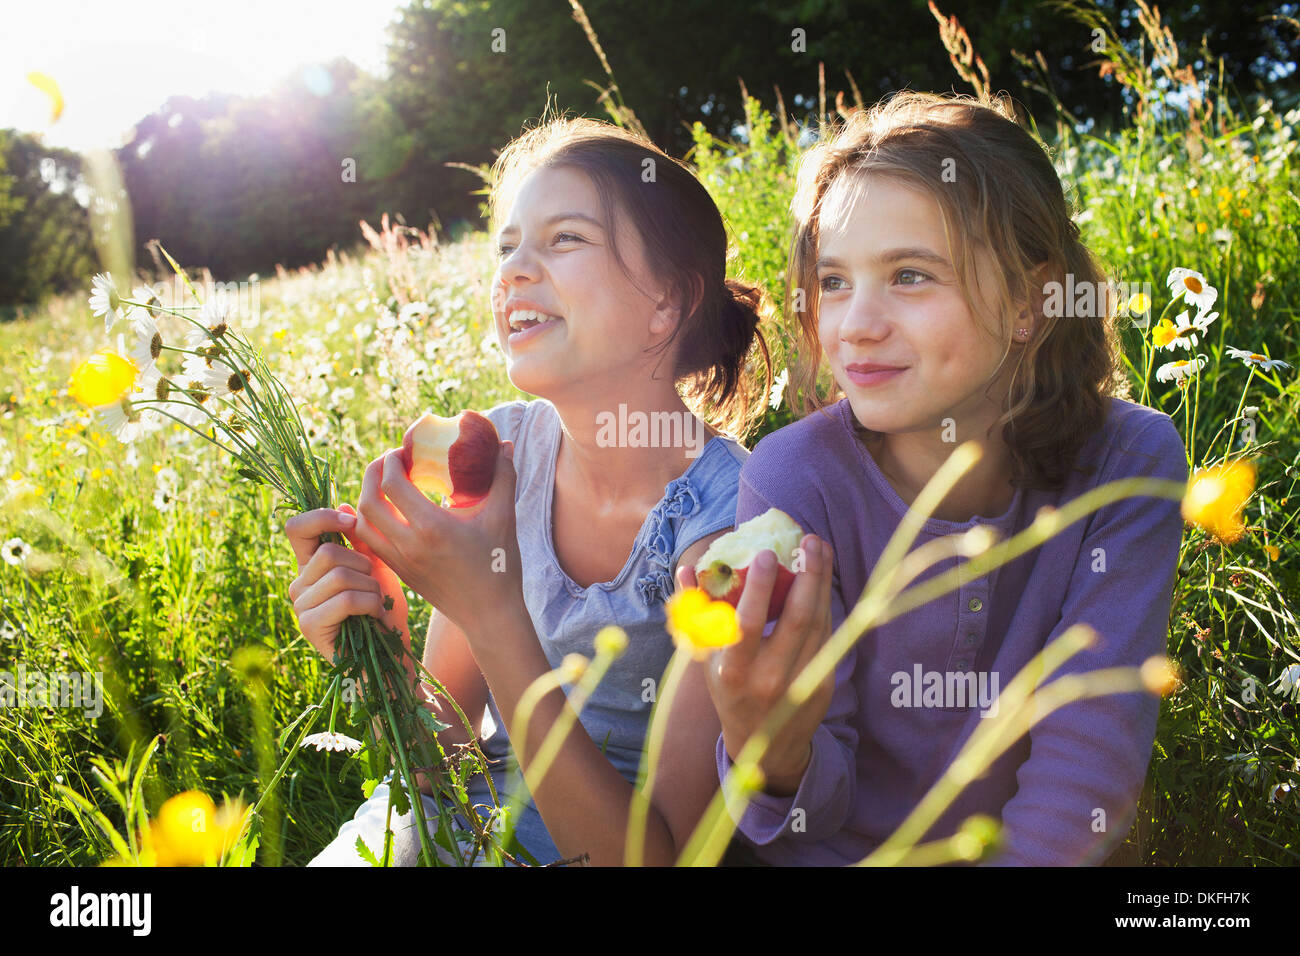 Sisters sitting in field eating apples - Stock Image